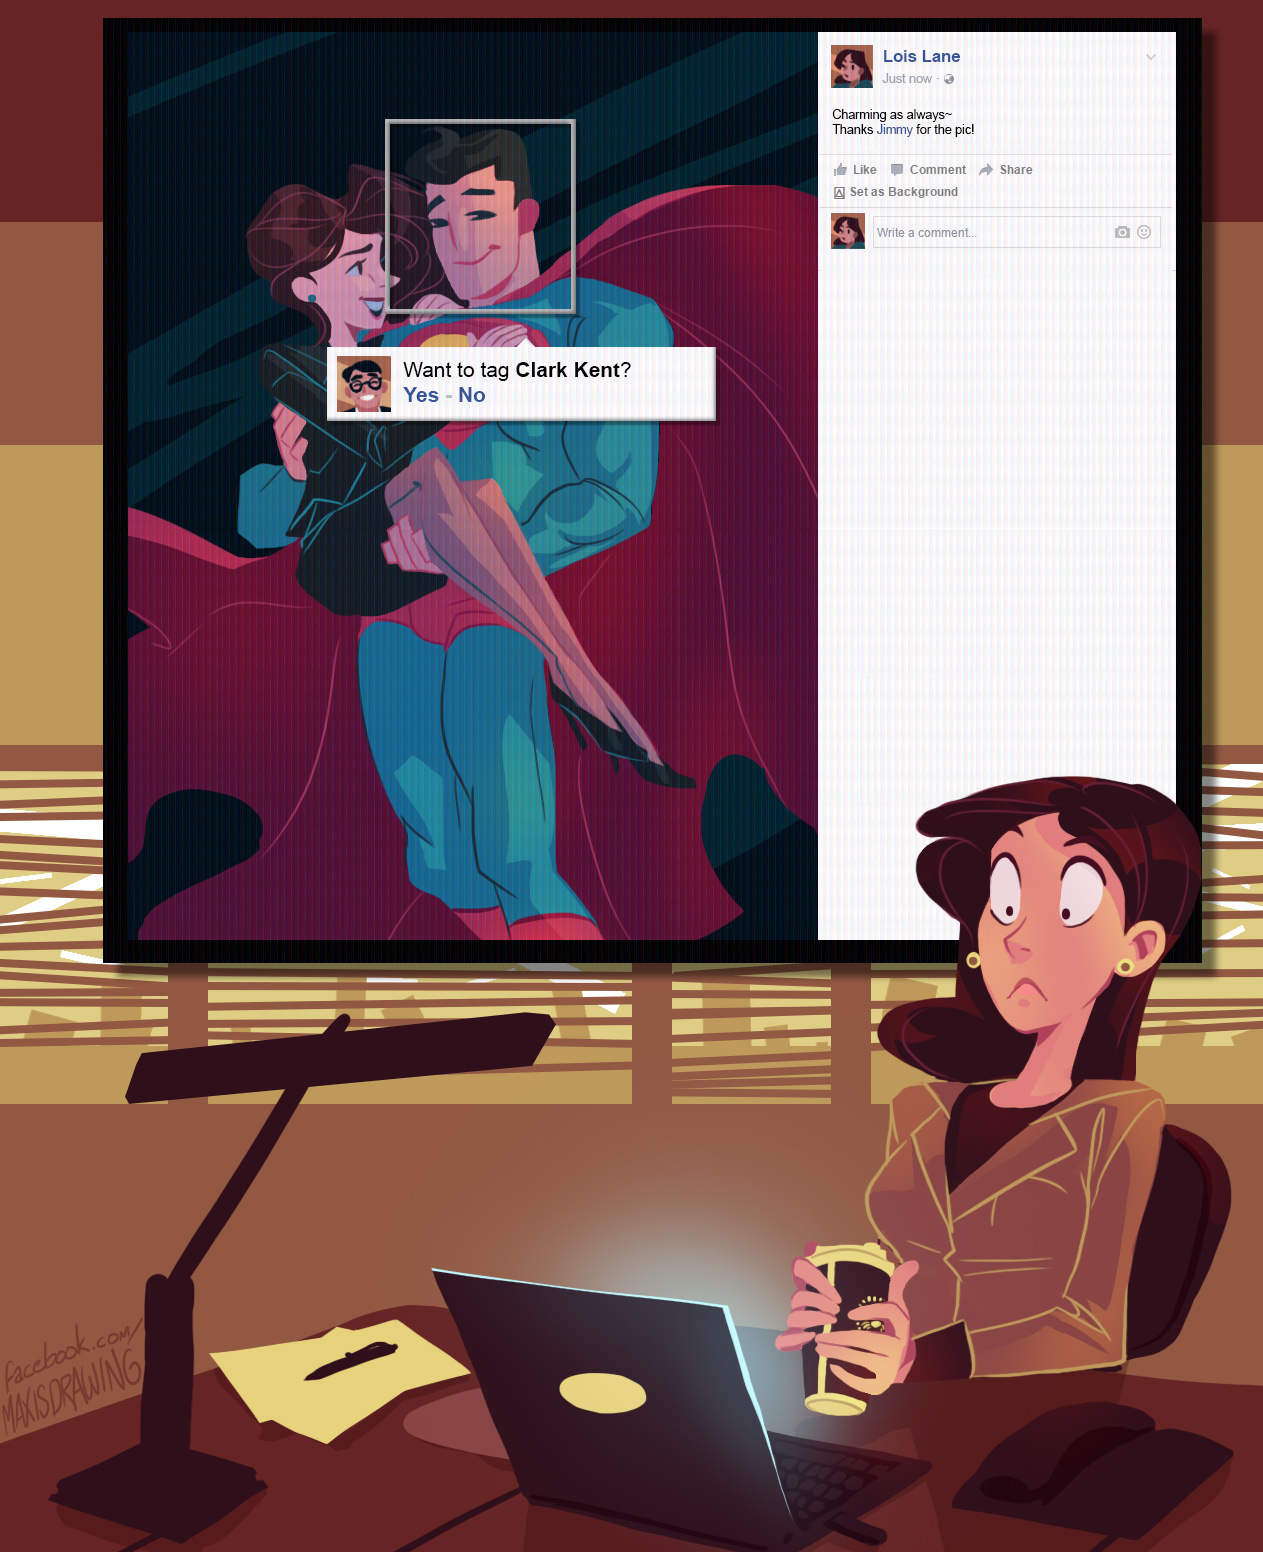 Want to tag clark kent superman know your meme lois lane just now charming as always thanks jimmy for the pic like comment thecheapjerseys Image collections